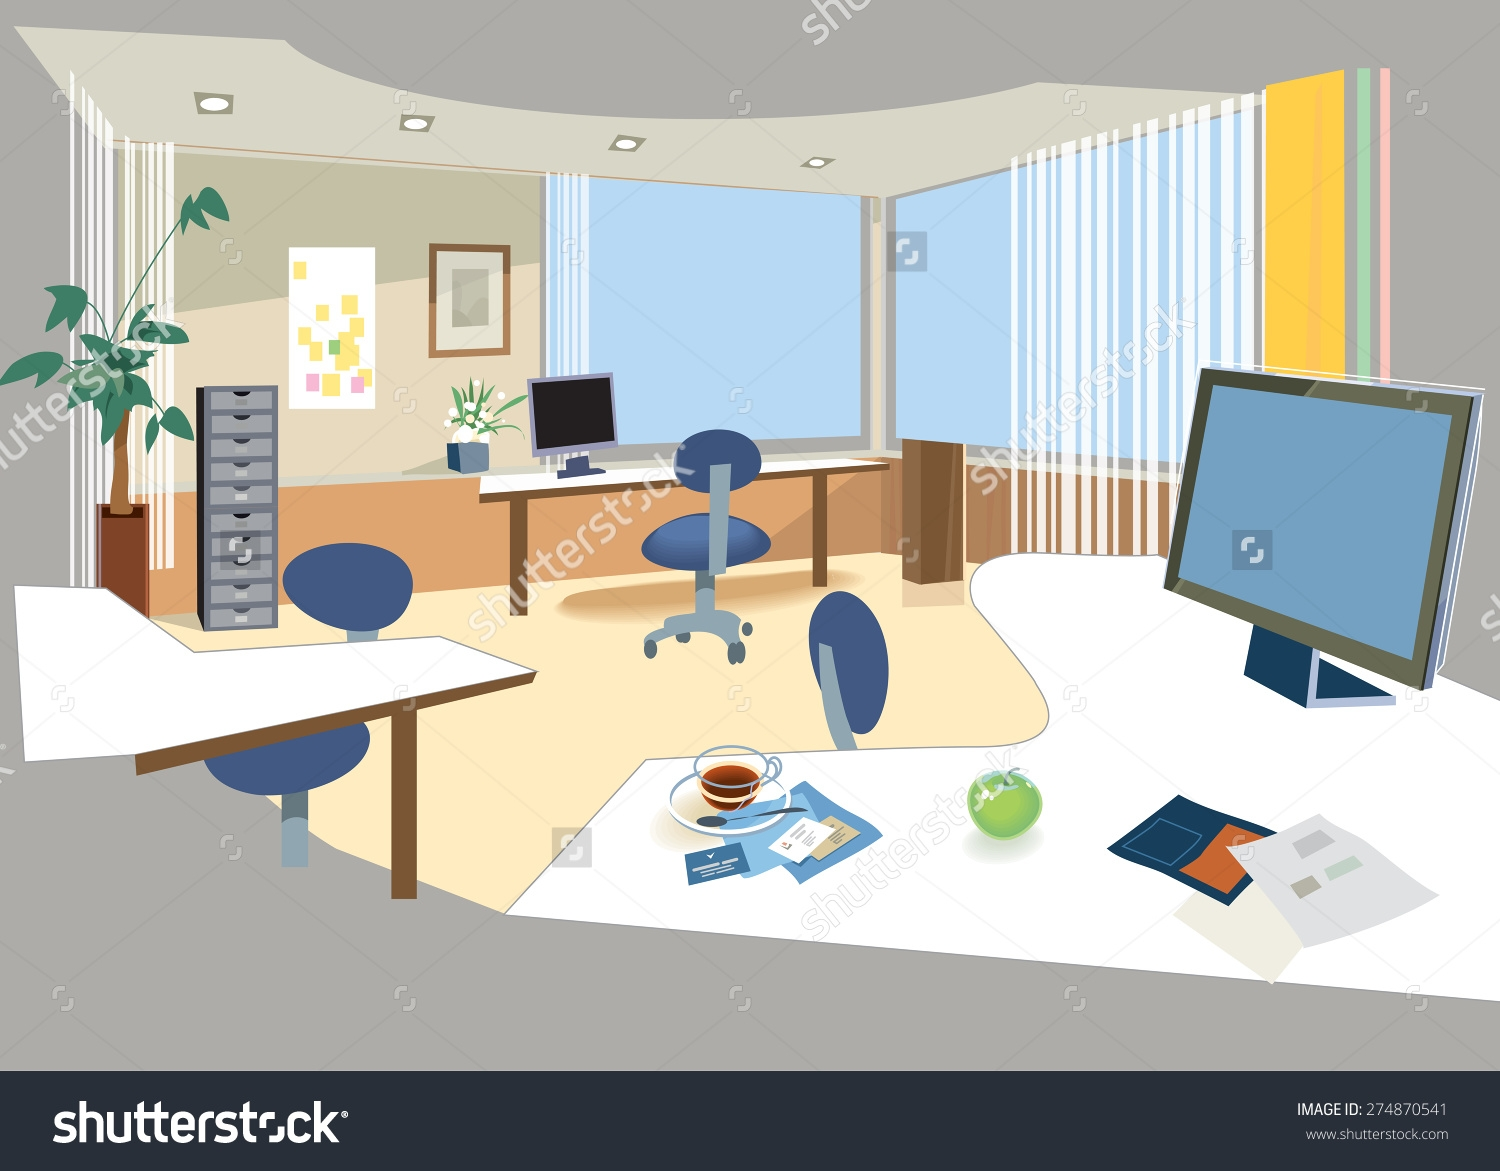 Office Room Clipart.